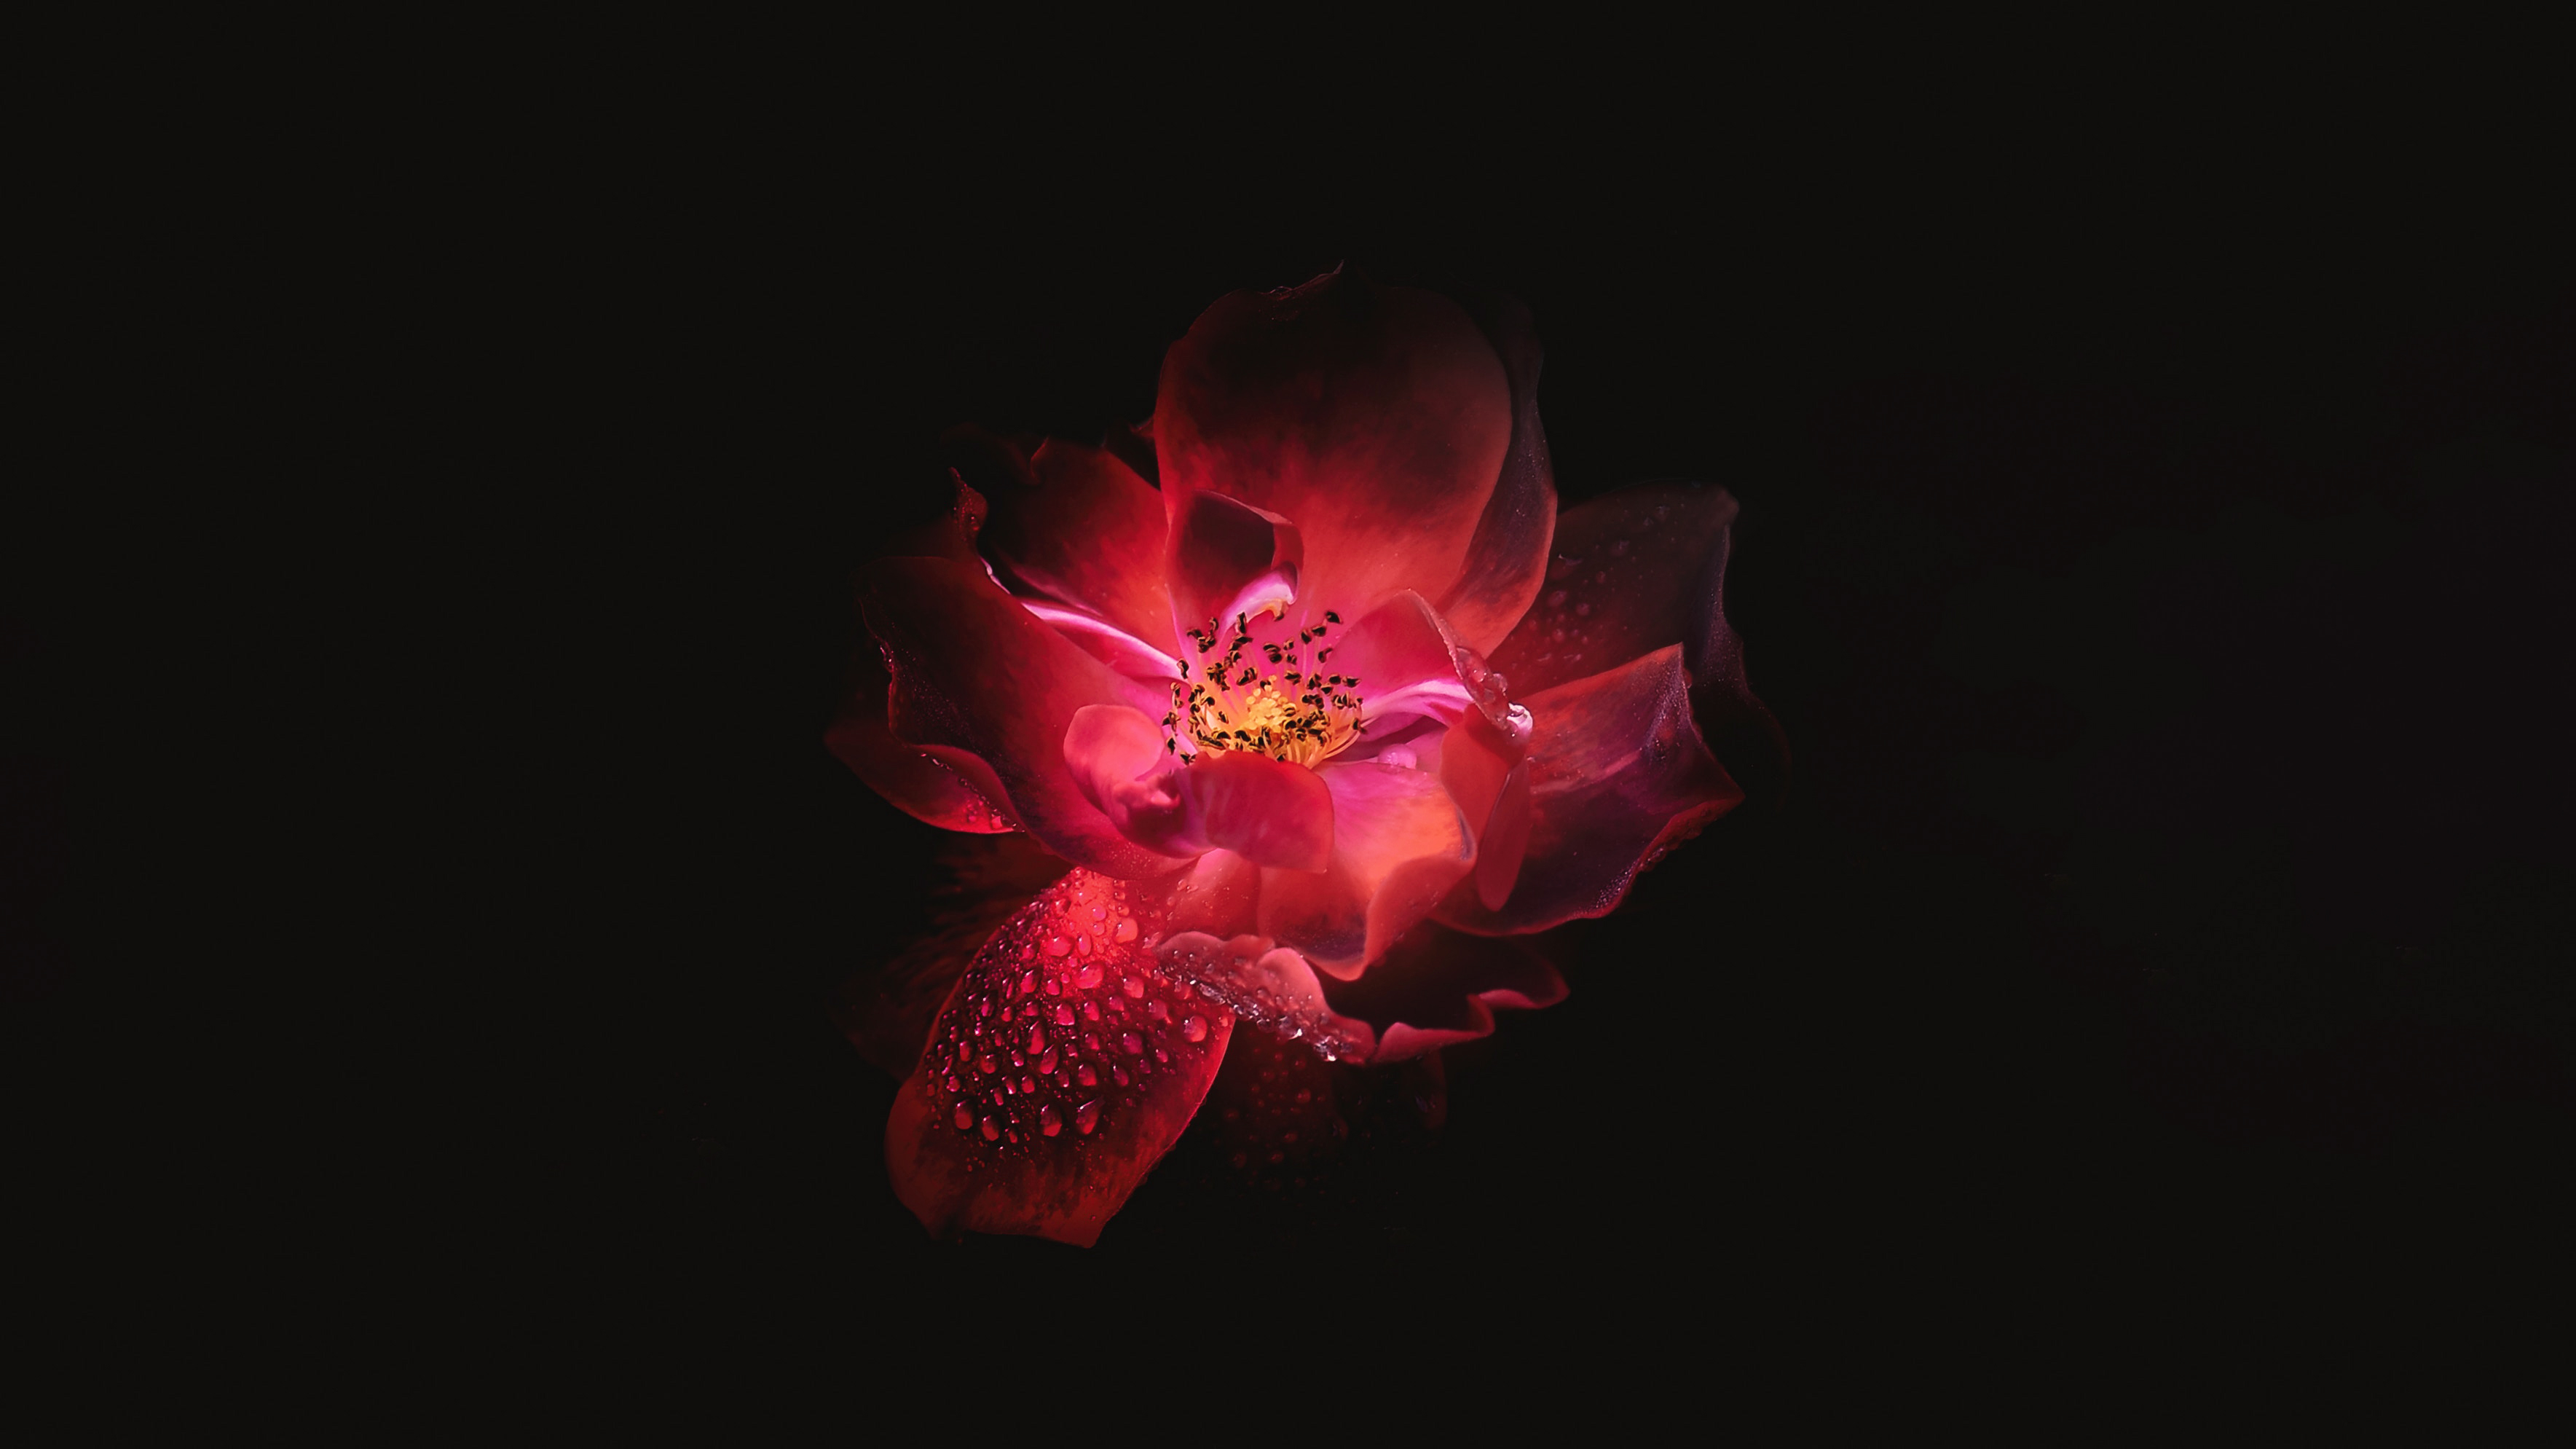 Red Flower Black Background 4k Hd Flowers 4k Wallpapers Images Backgrounds Photos And Pictures